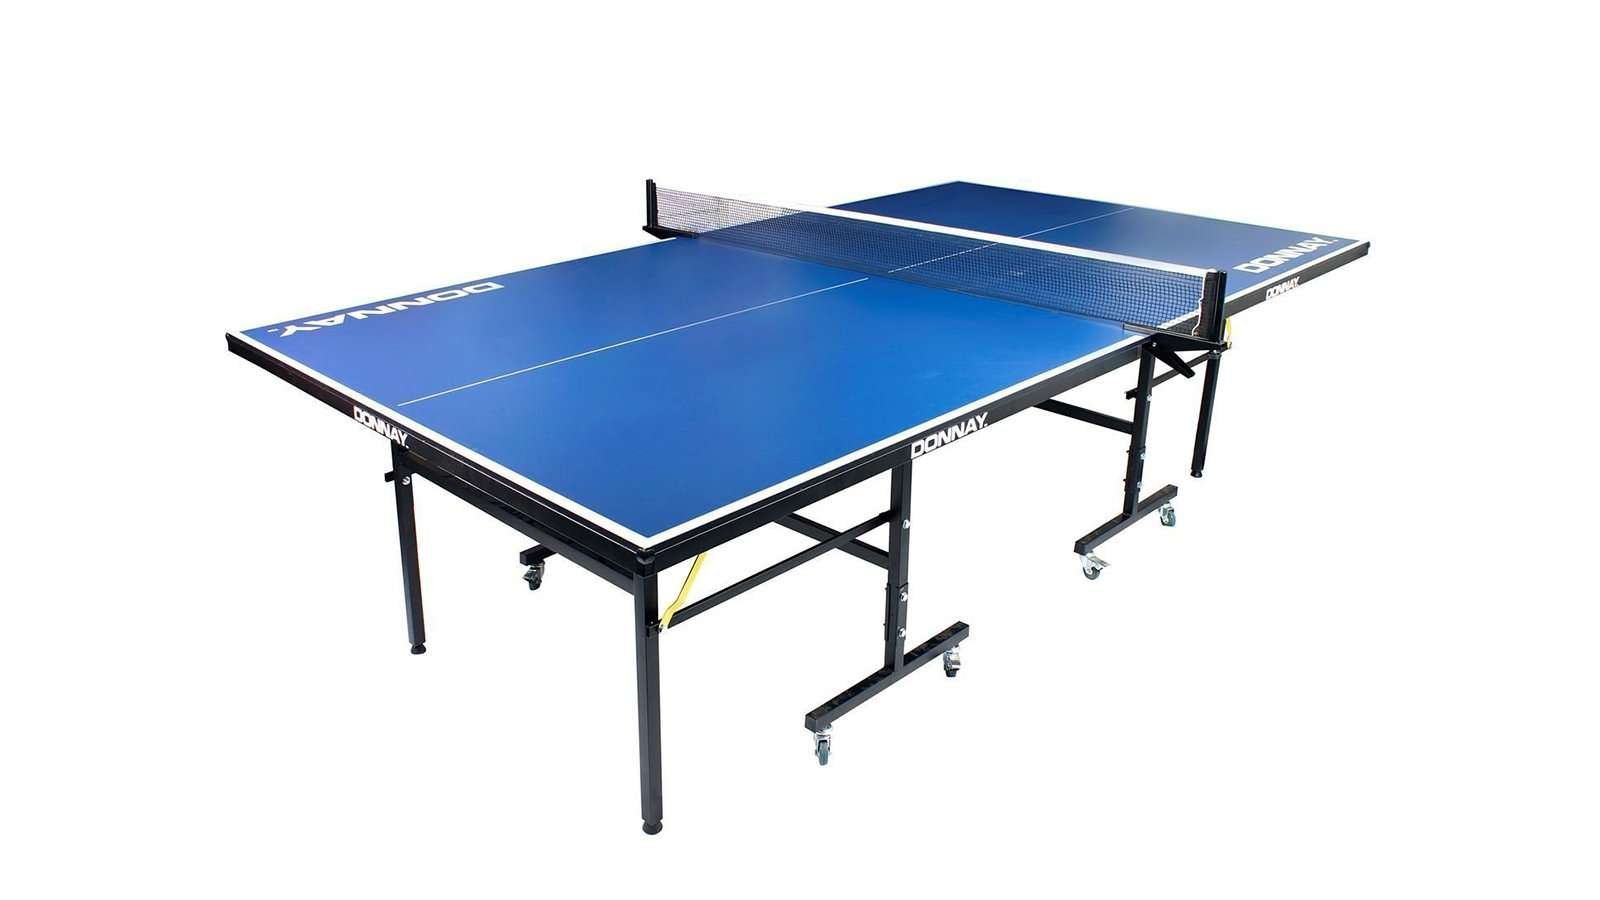 Best table tennis tables 2018 buy the best ping pong table for home - Weatherproof table tennis table ...